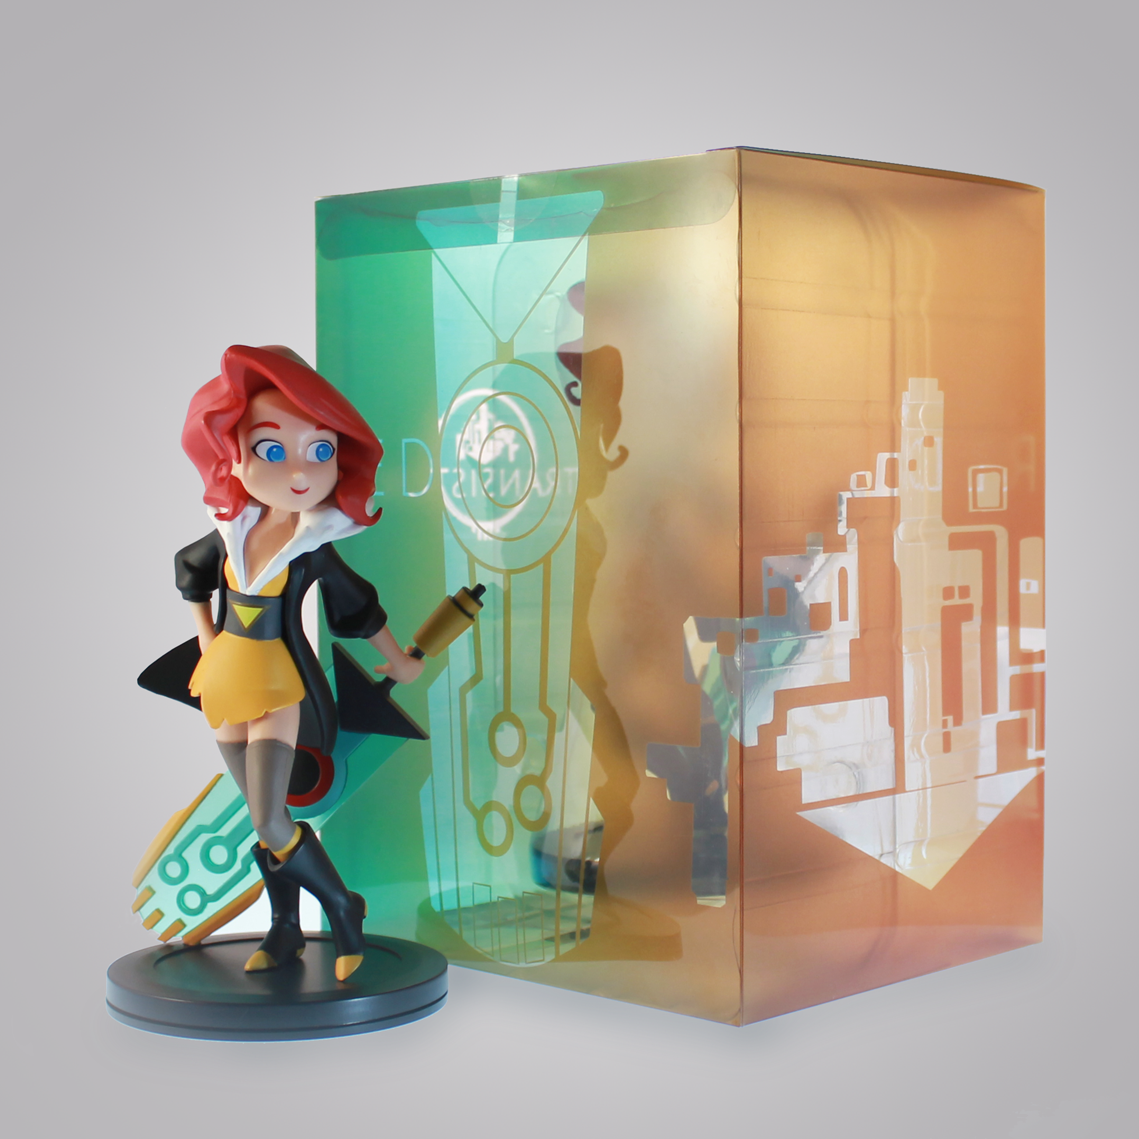 Visit our online store to get the new Transistor Collectible Figure! https://t.co/Y4qZTXSC1E  We ship worldwide! https://t.co/hx5Q1Qv6KT